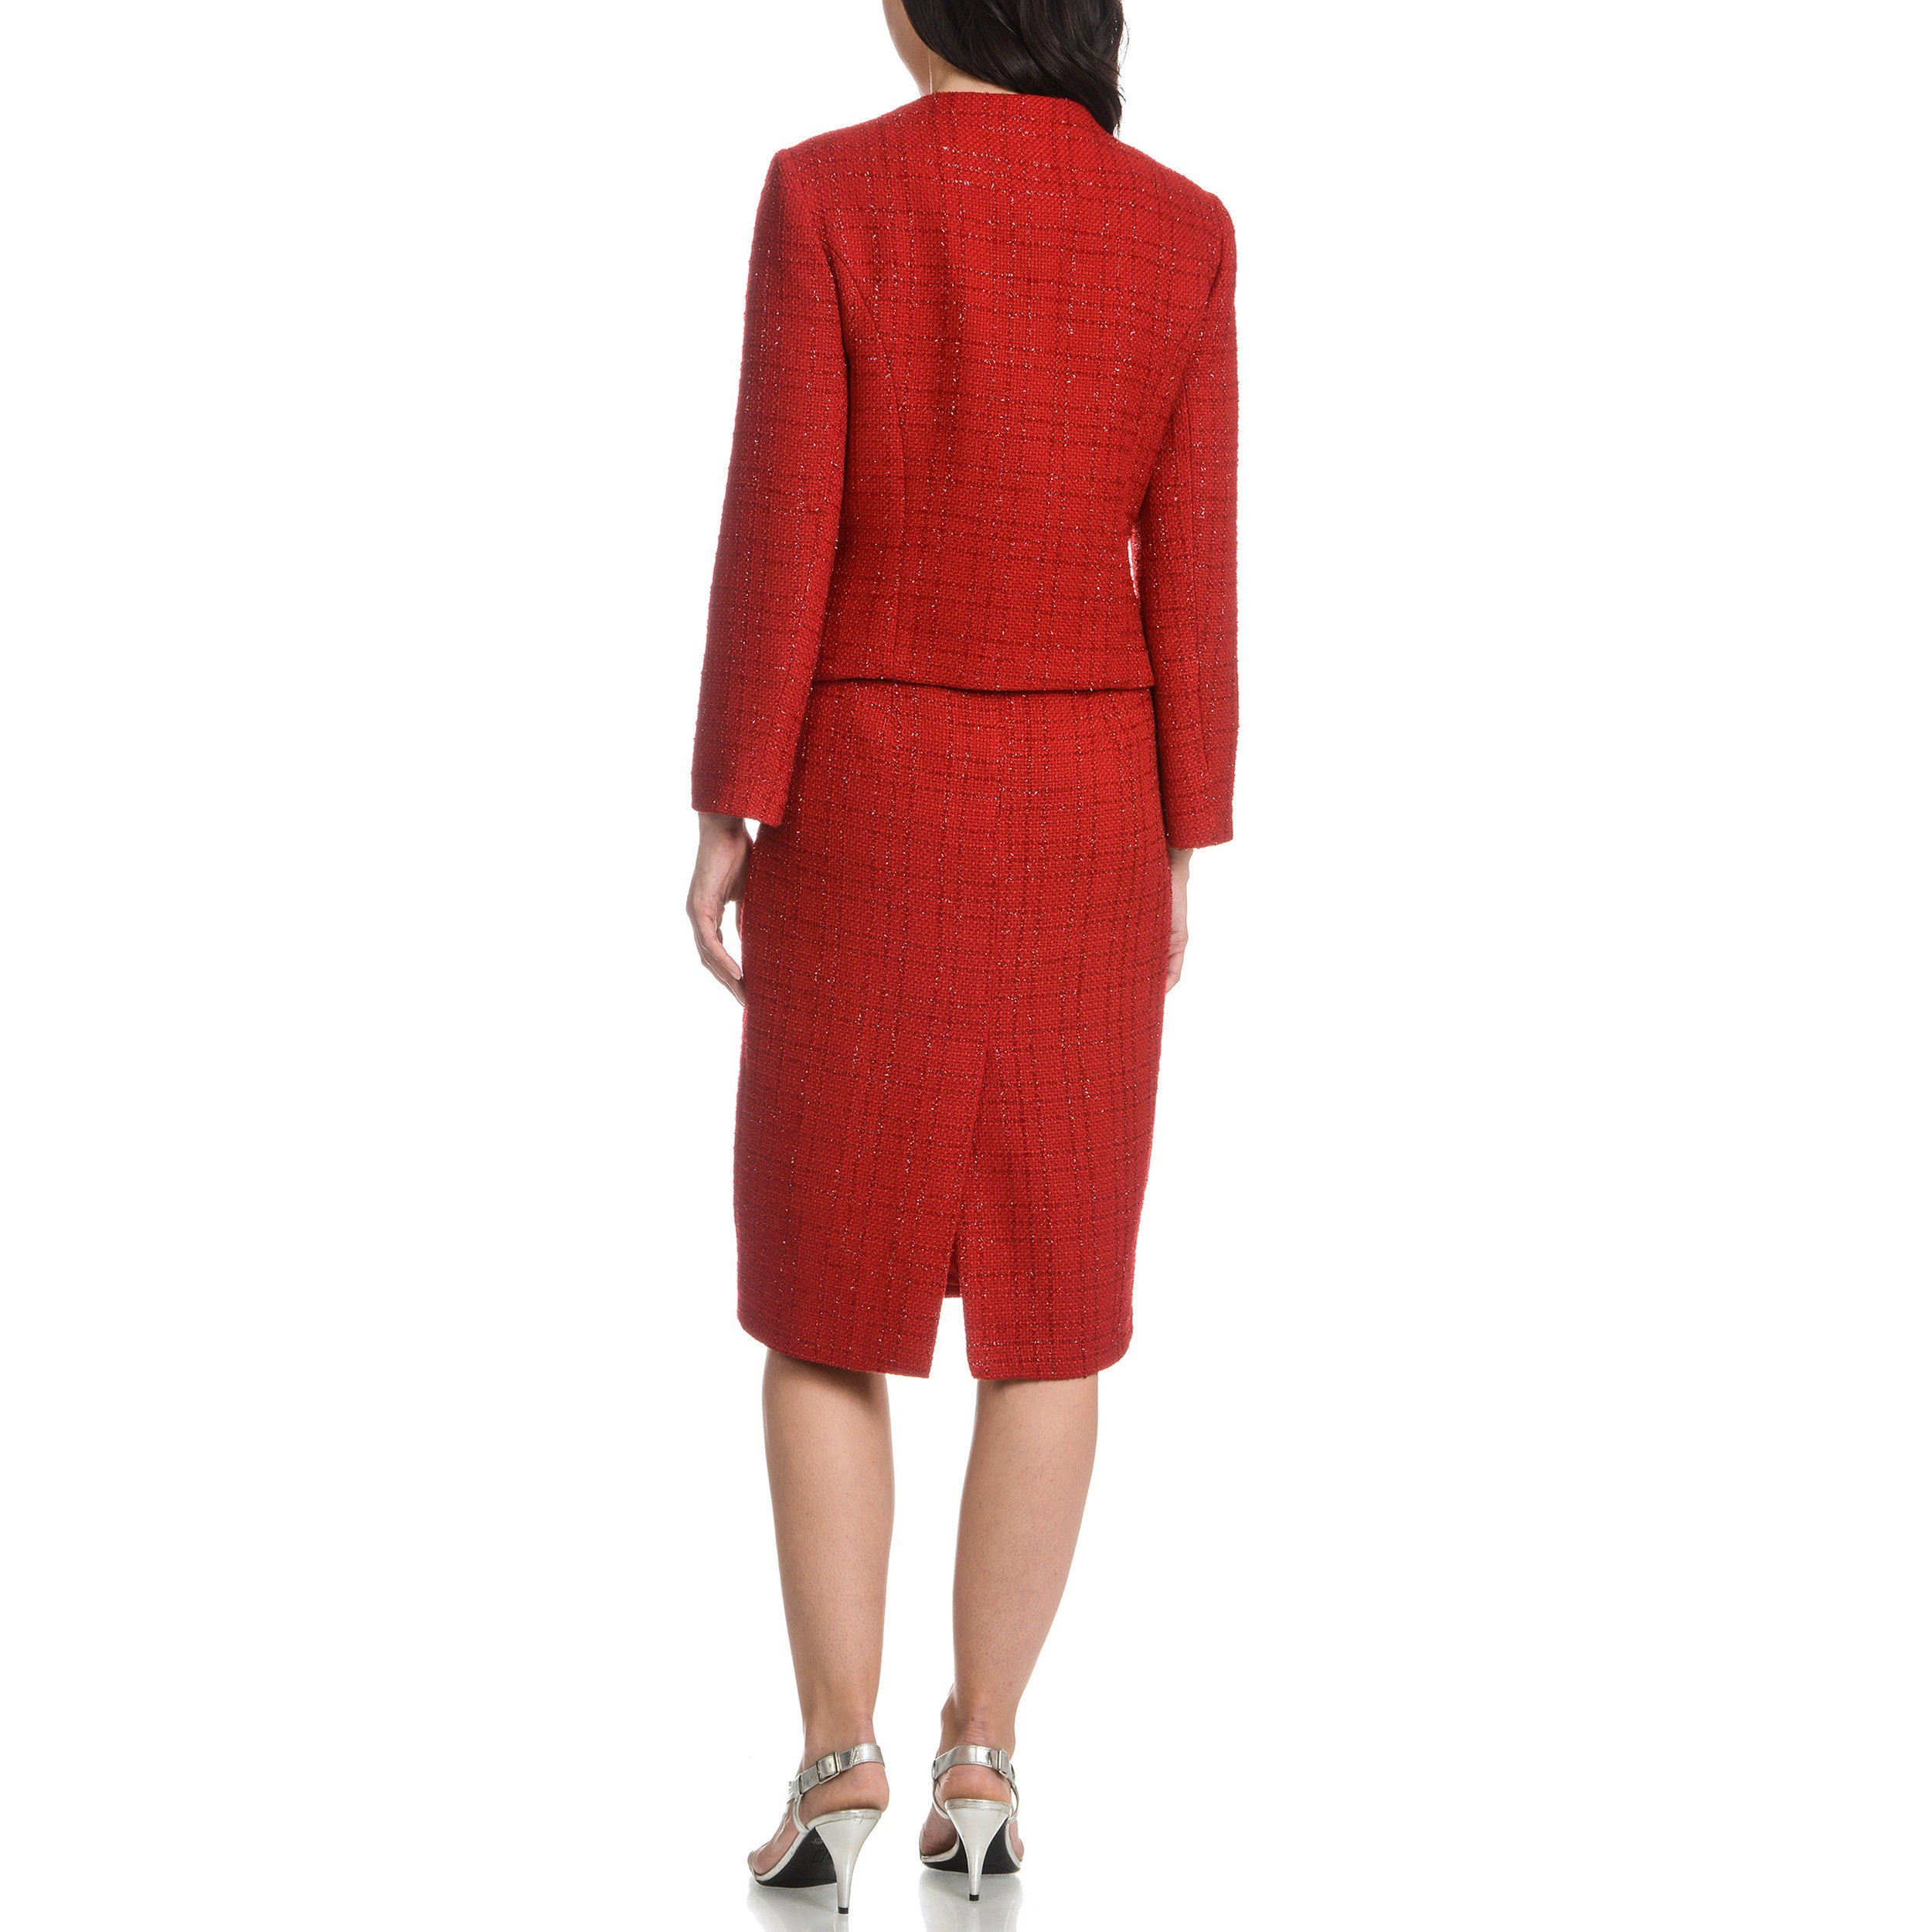 Shop Mia-Knits Collection Women s Glitter Boucle 2-piece Dress Suit - Free  Shipping Today - Overstock - 10812737 b7ff38cb8c